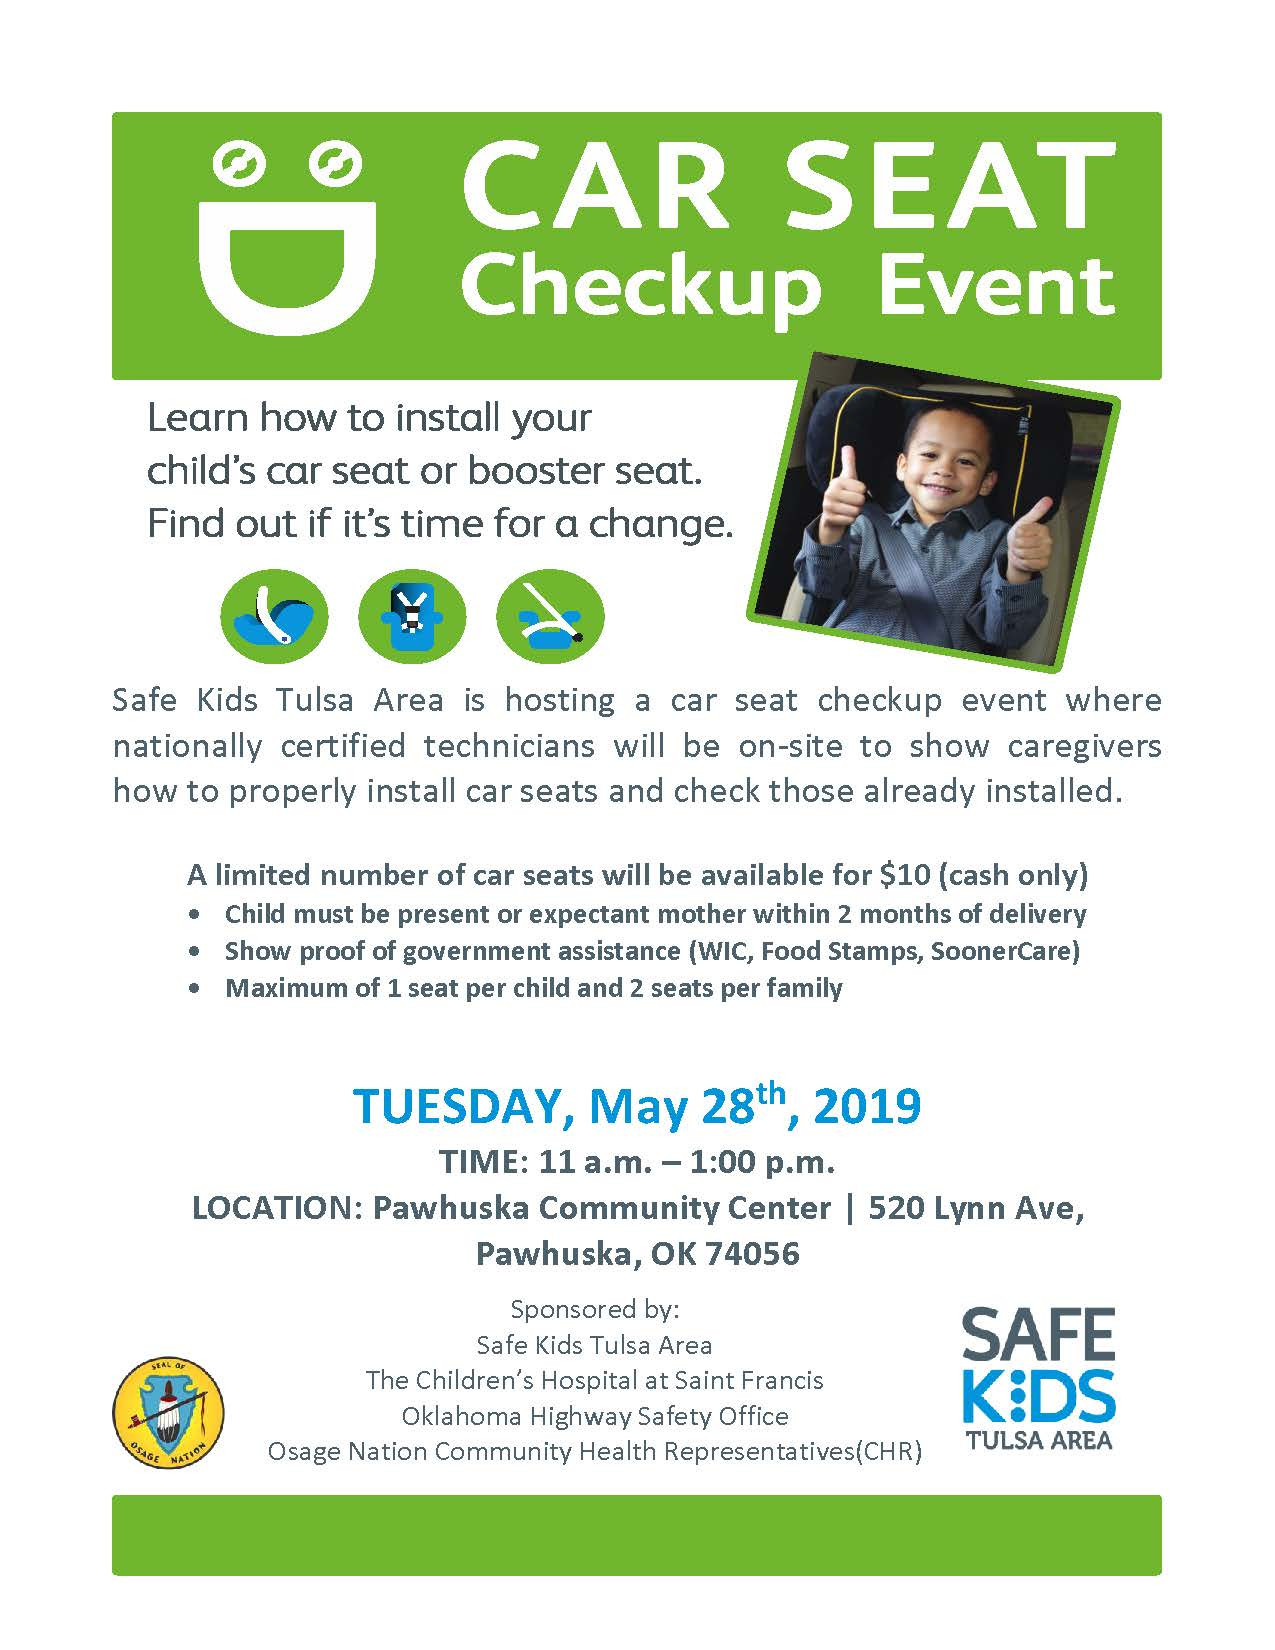 Car Seat Checkup Event Flyer